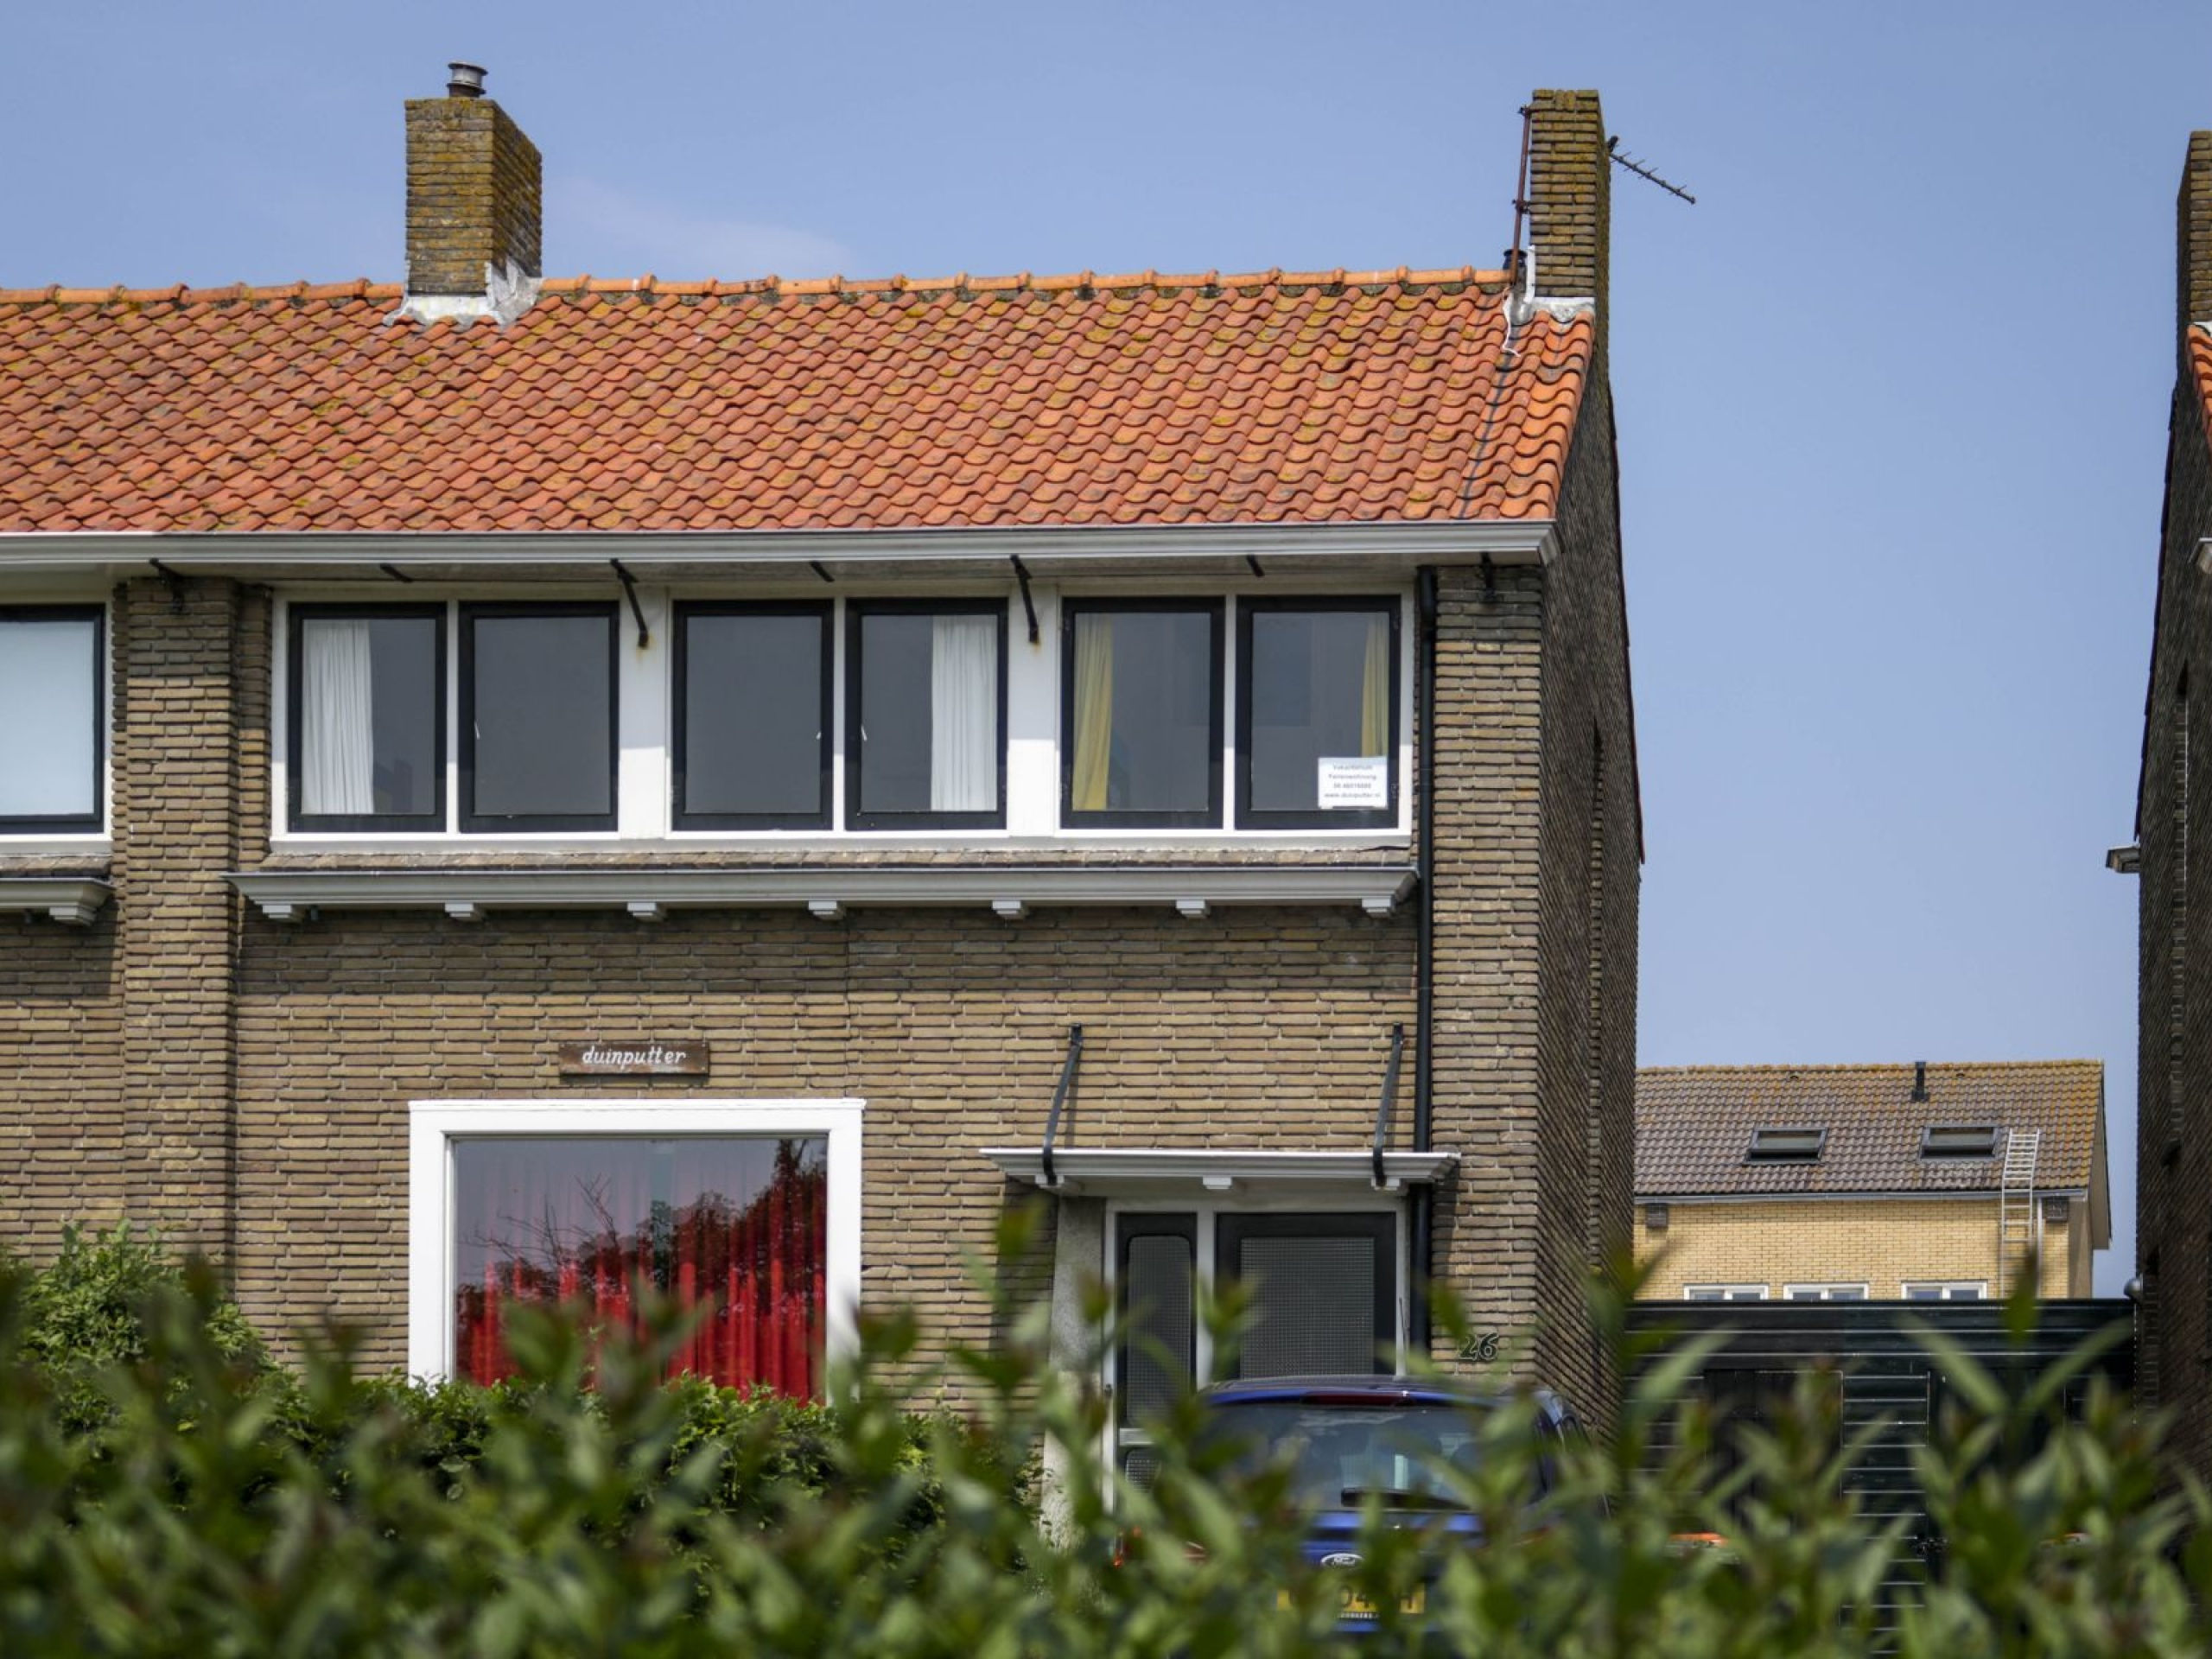 Holiday home in ideal location near the sea and beach in De Koog